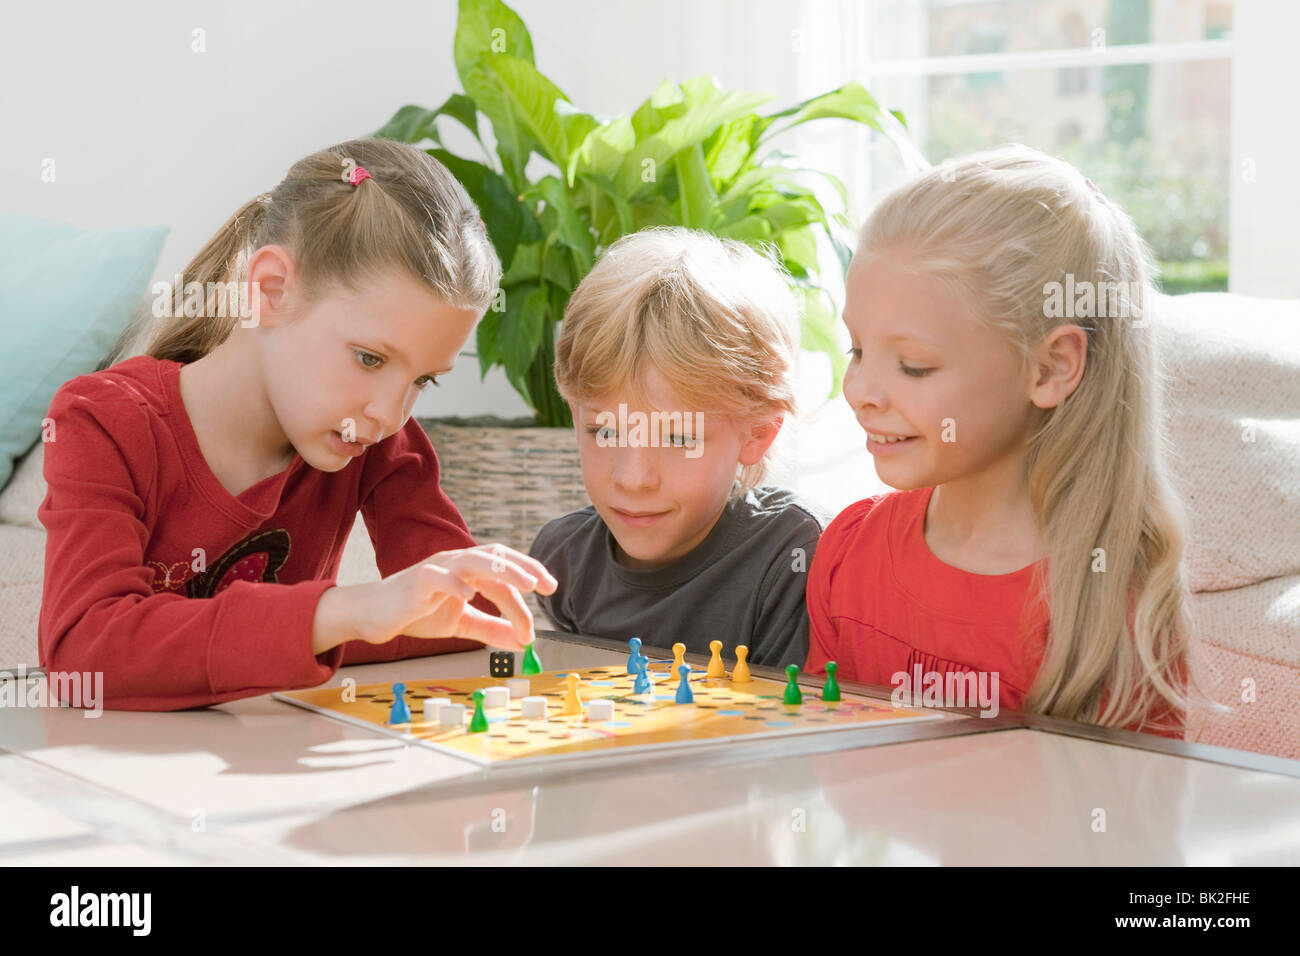 Board Game Stock Photos & Board Game Stock Images - Alamy